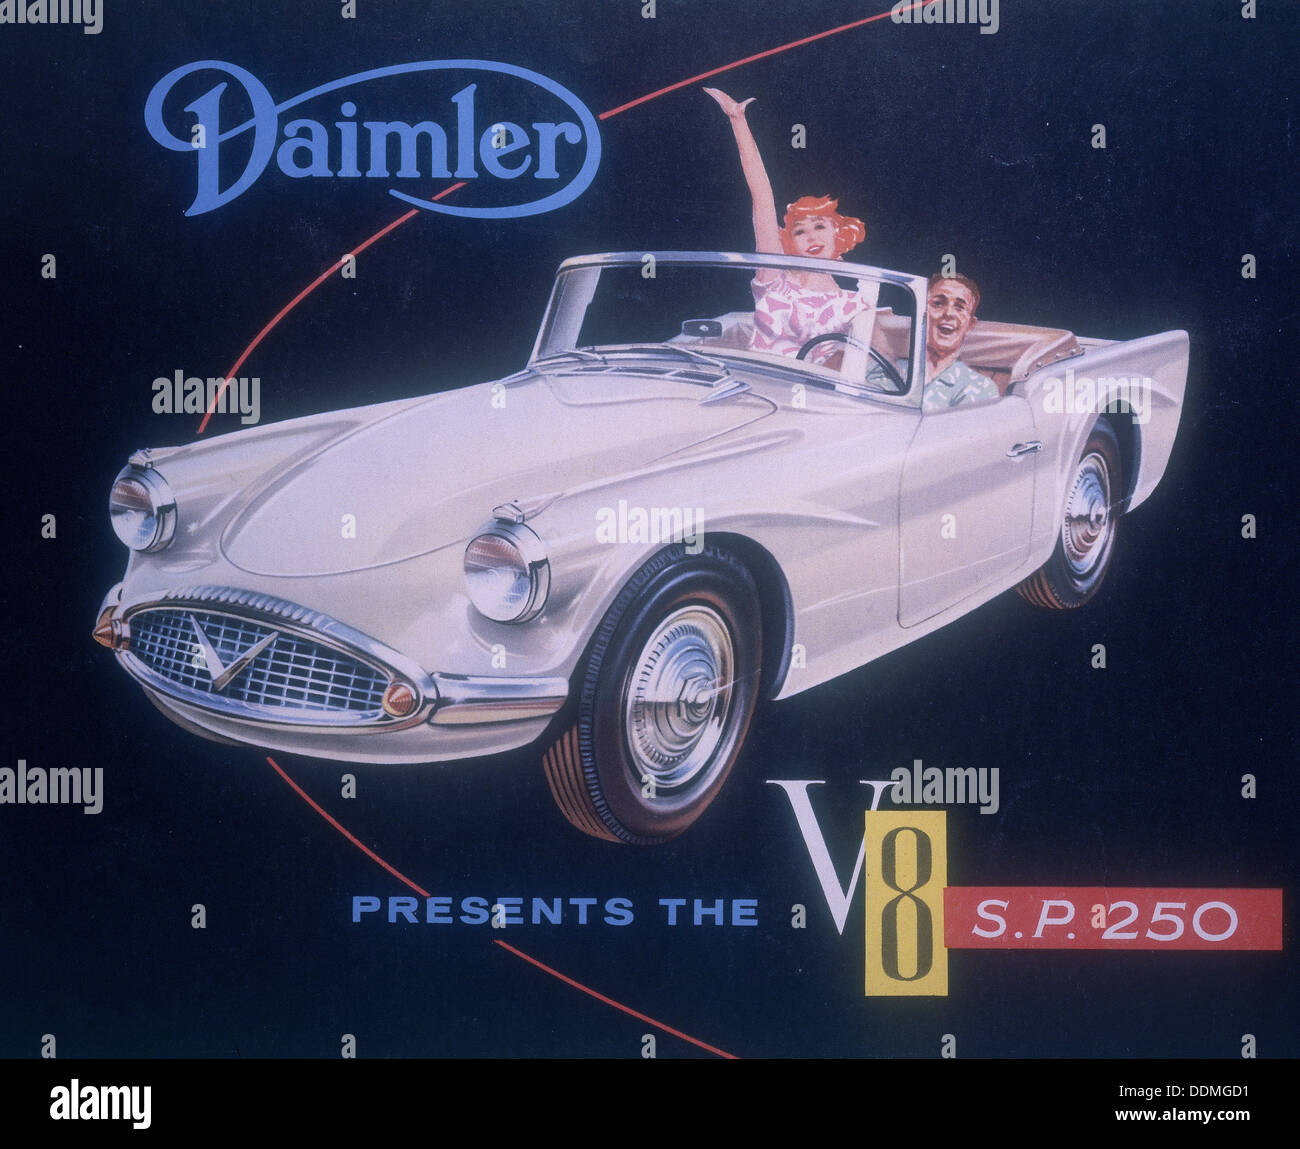 Poster advertising the Daimler V8 SP 250, 1959. - Stock Image